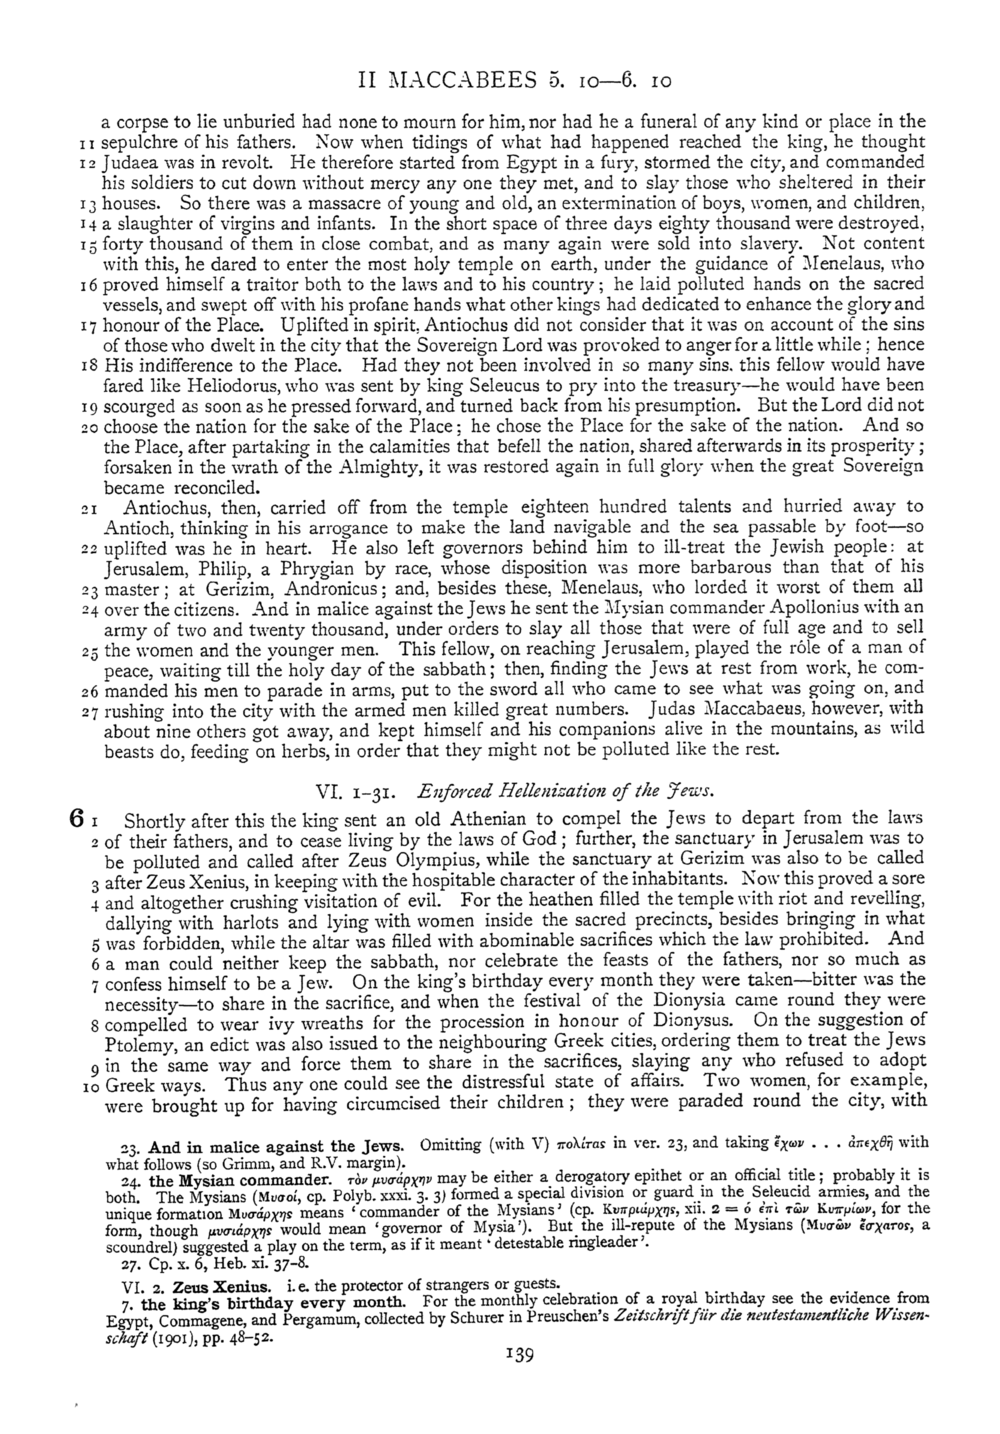 Image of page 139